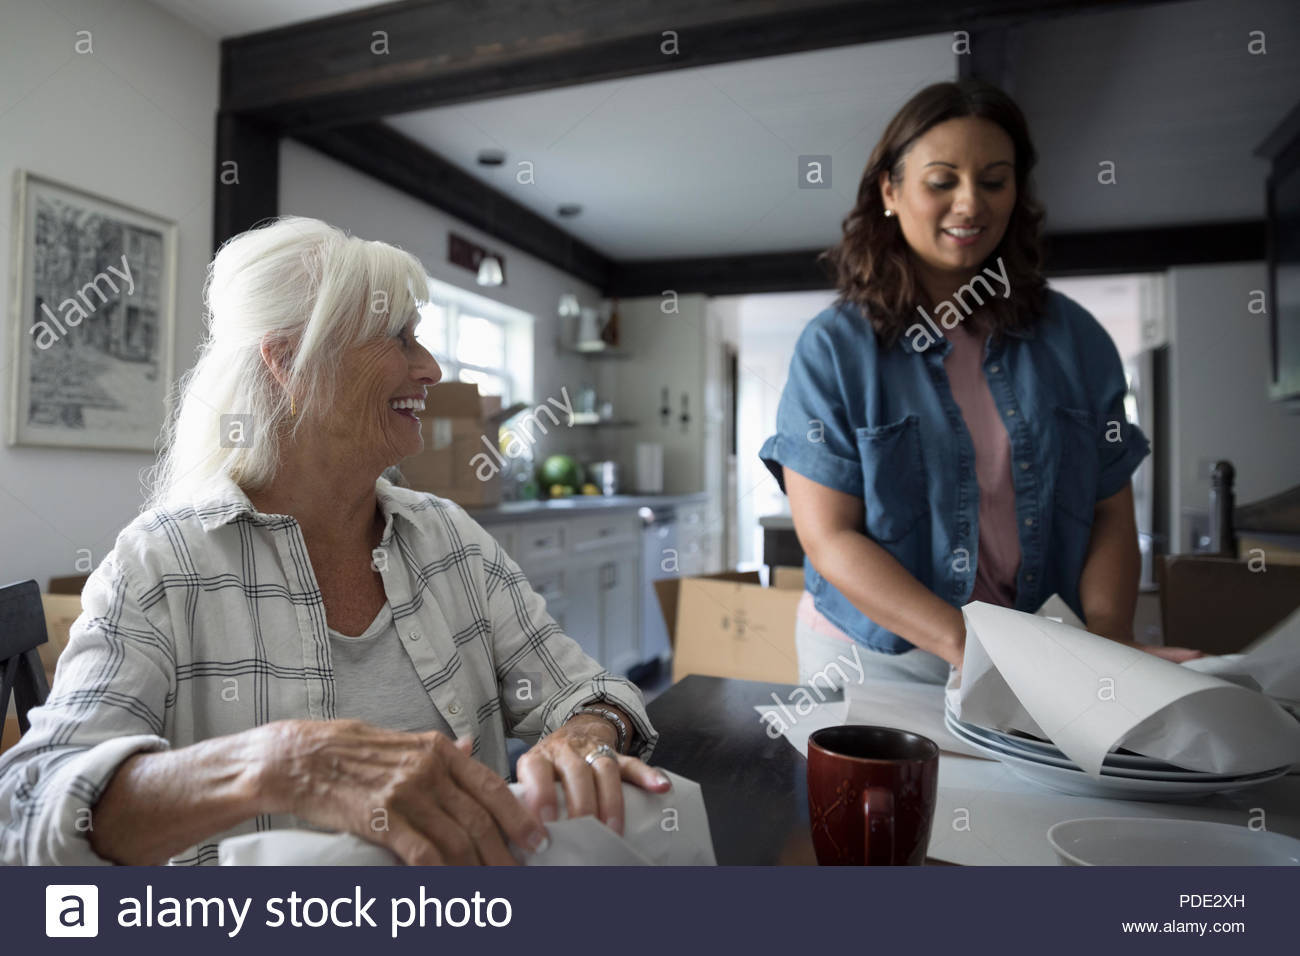 Smiling daughter helping senior mother downsize, packing dishes - Stock Image